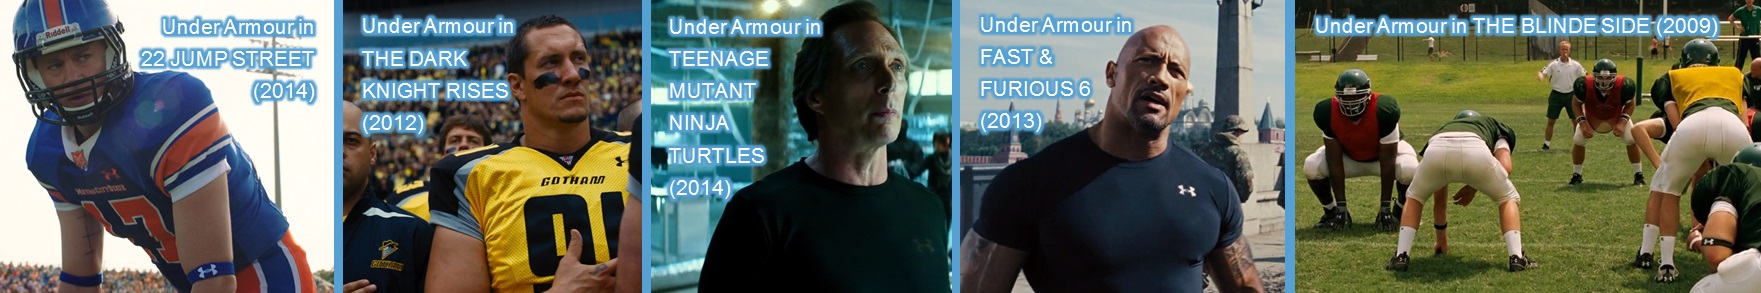 under armour in movies entertainment